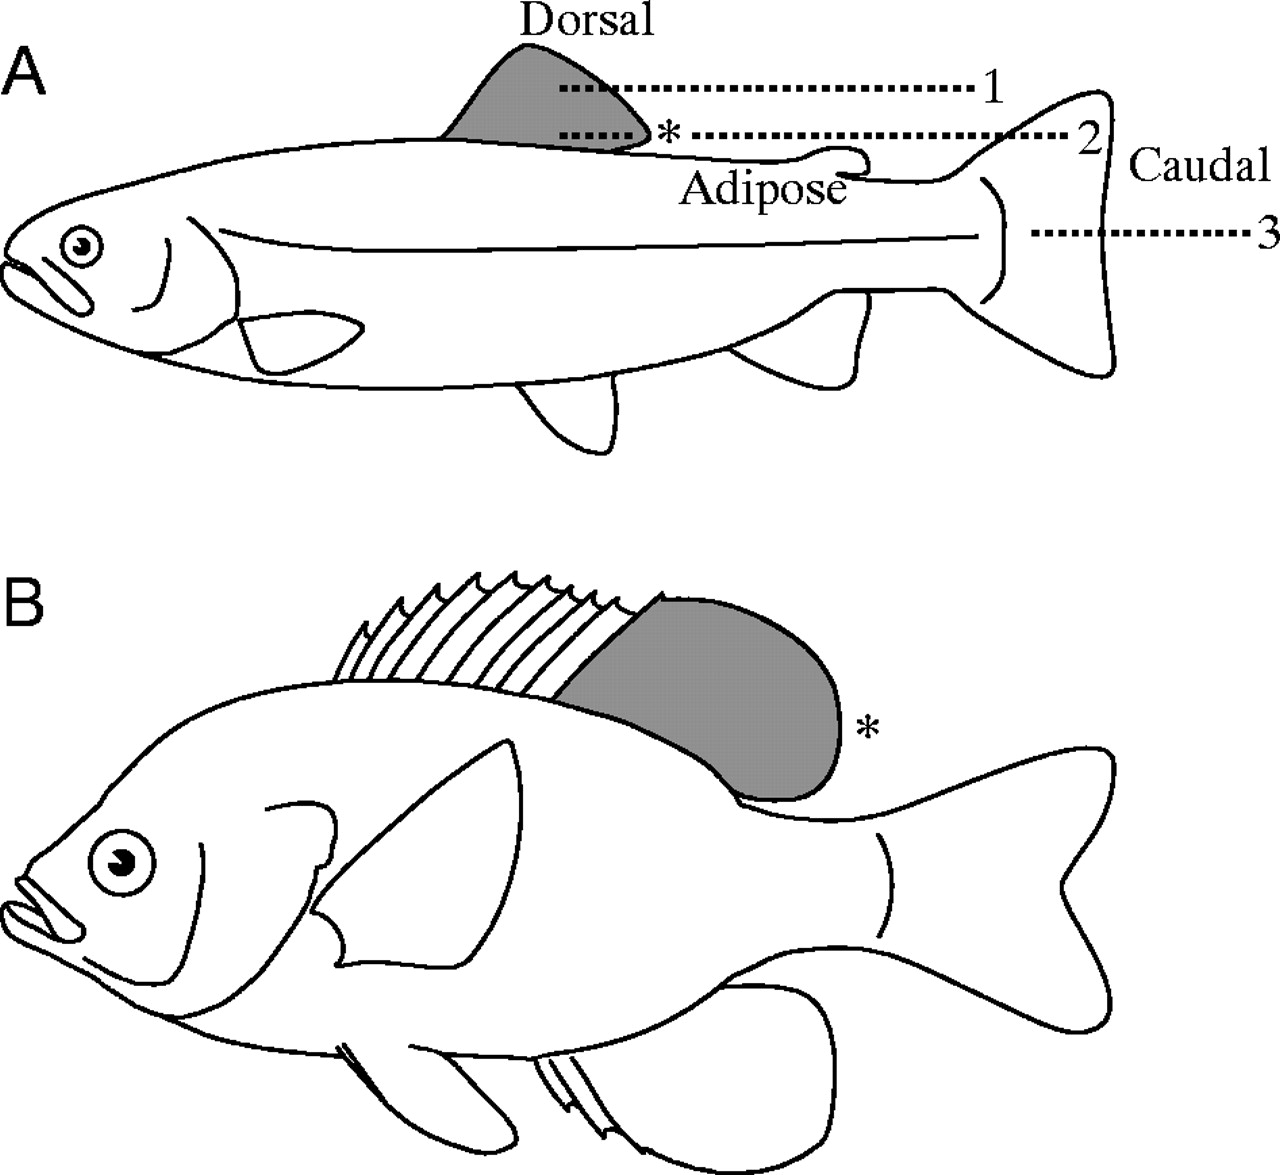 Adipose fin clipart clip art royalty free library Locomotor function of the dorsal fin in rainbow trout: kinematic ... clip art royalty free library